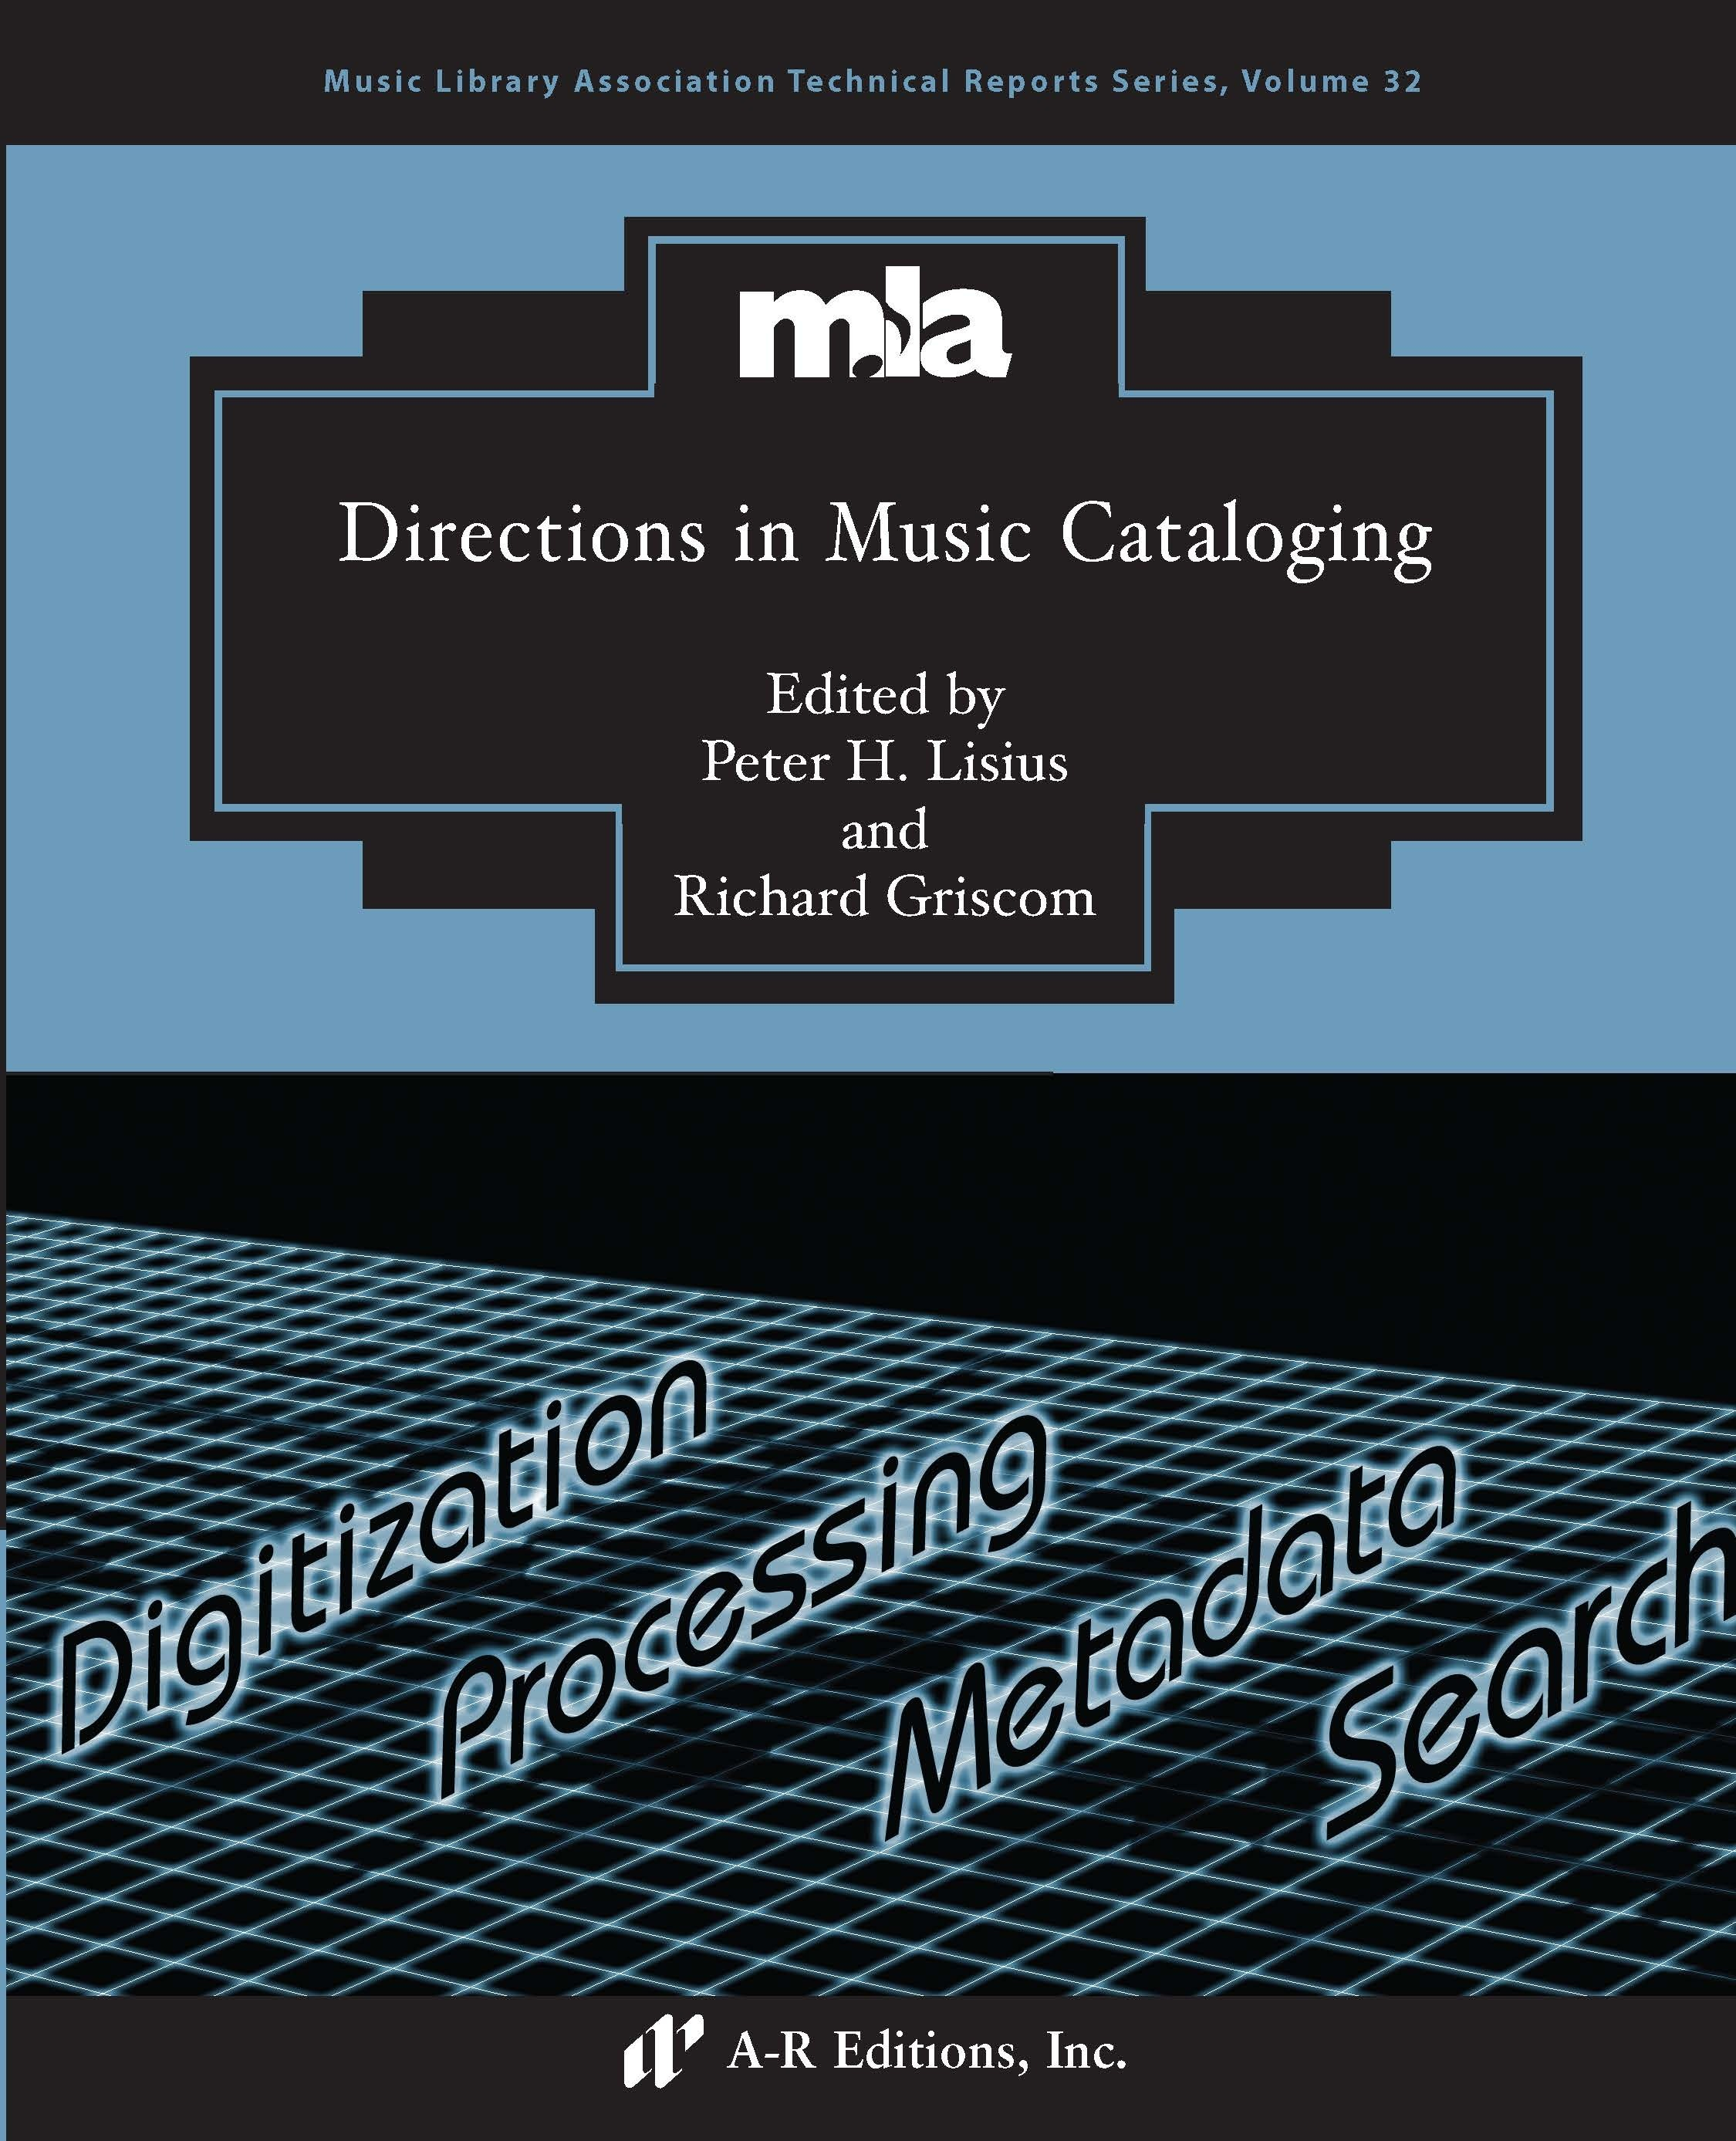 Lisius and Griscom, eds.: Directions in Music Cataloging